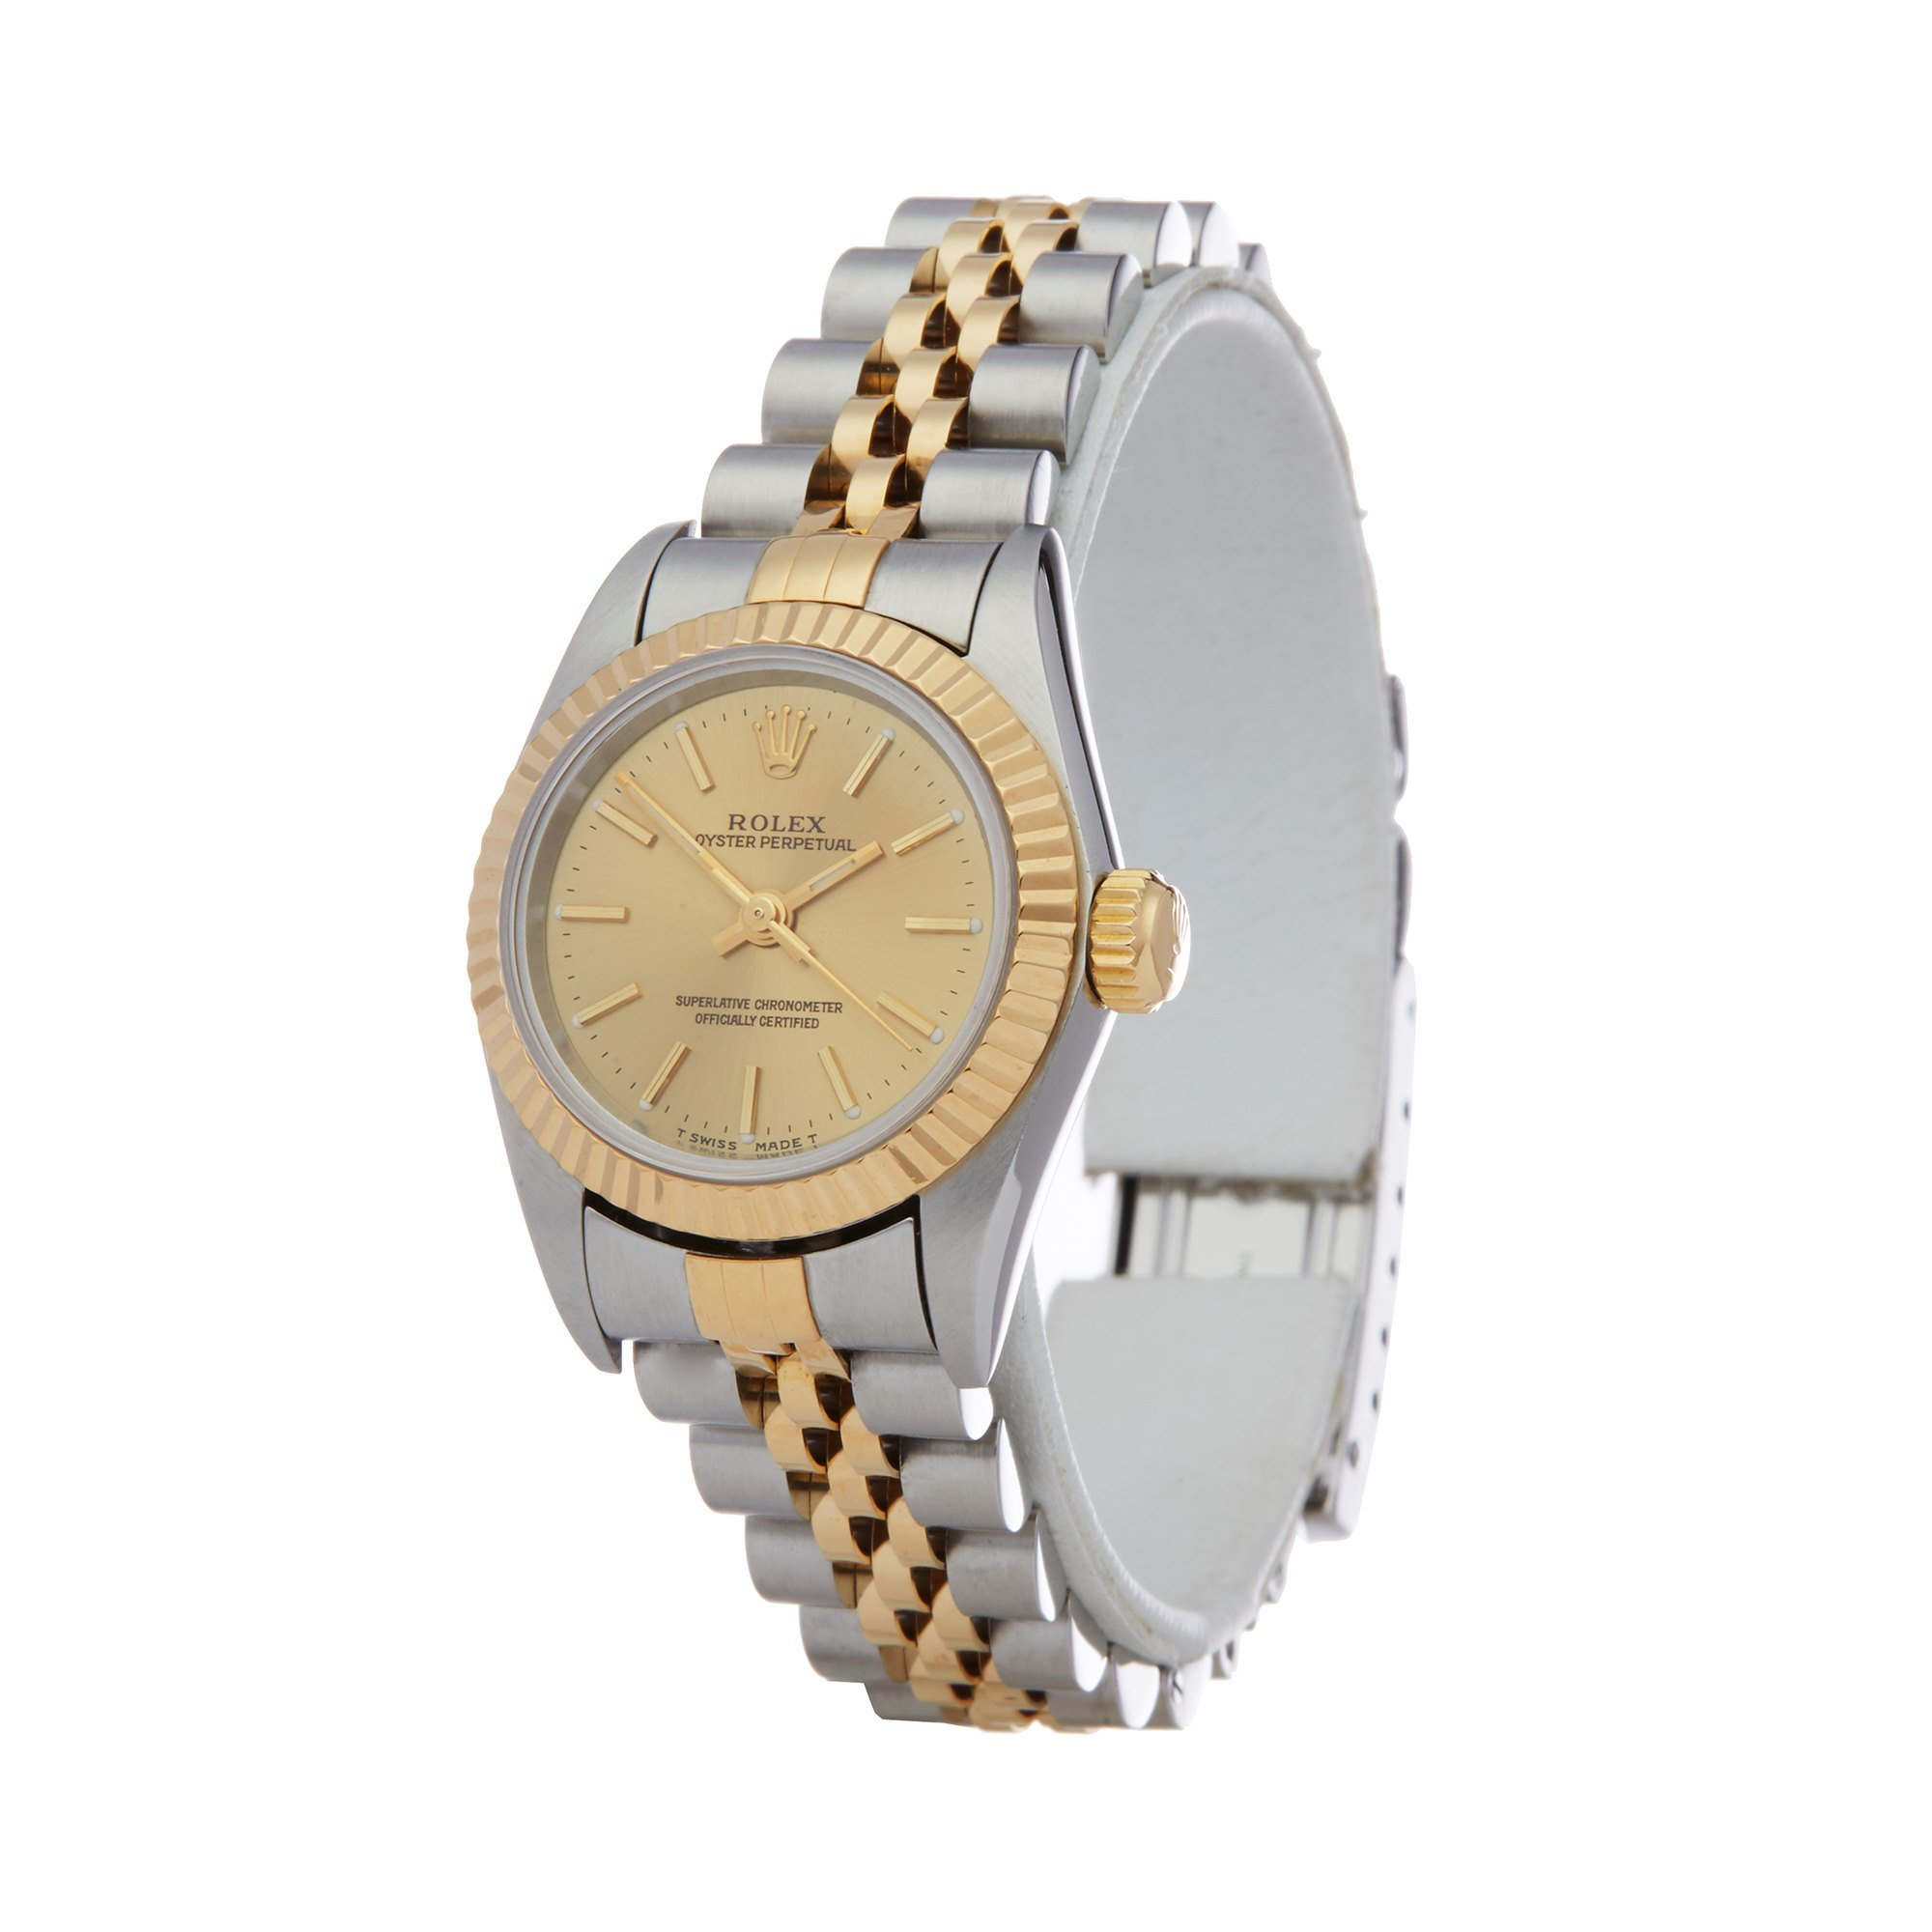 Lot 19 - Rolex Oyster Perpetual 26 67193 Ladies Stainless Steel & Yellow Gold Watch